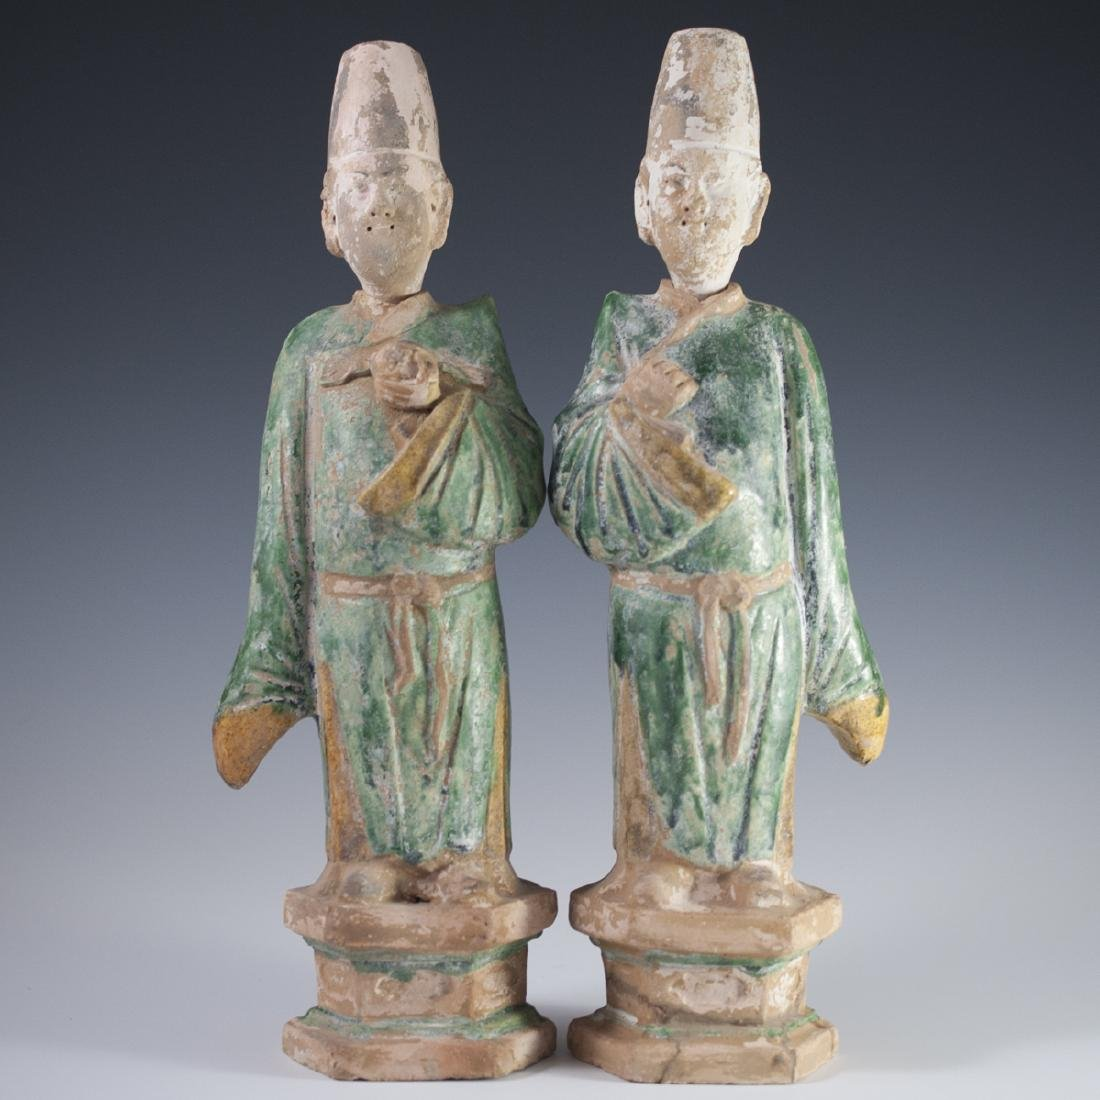 Ming Dynasty Pottery Sculptures